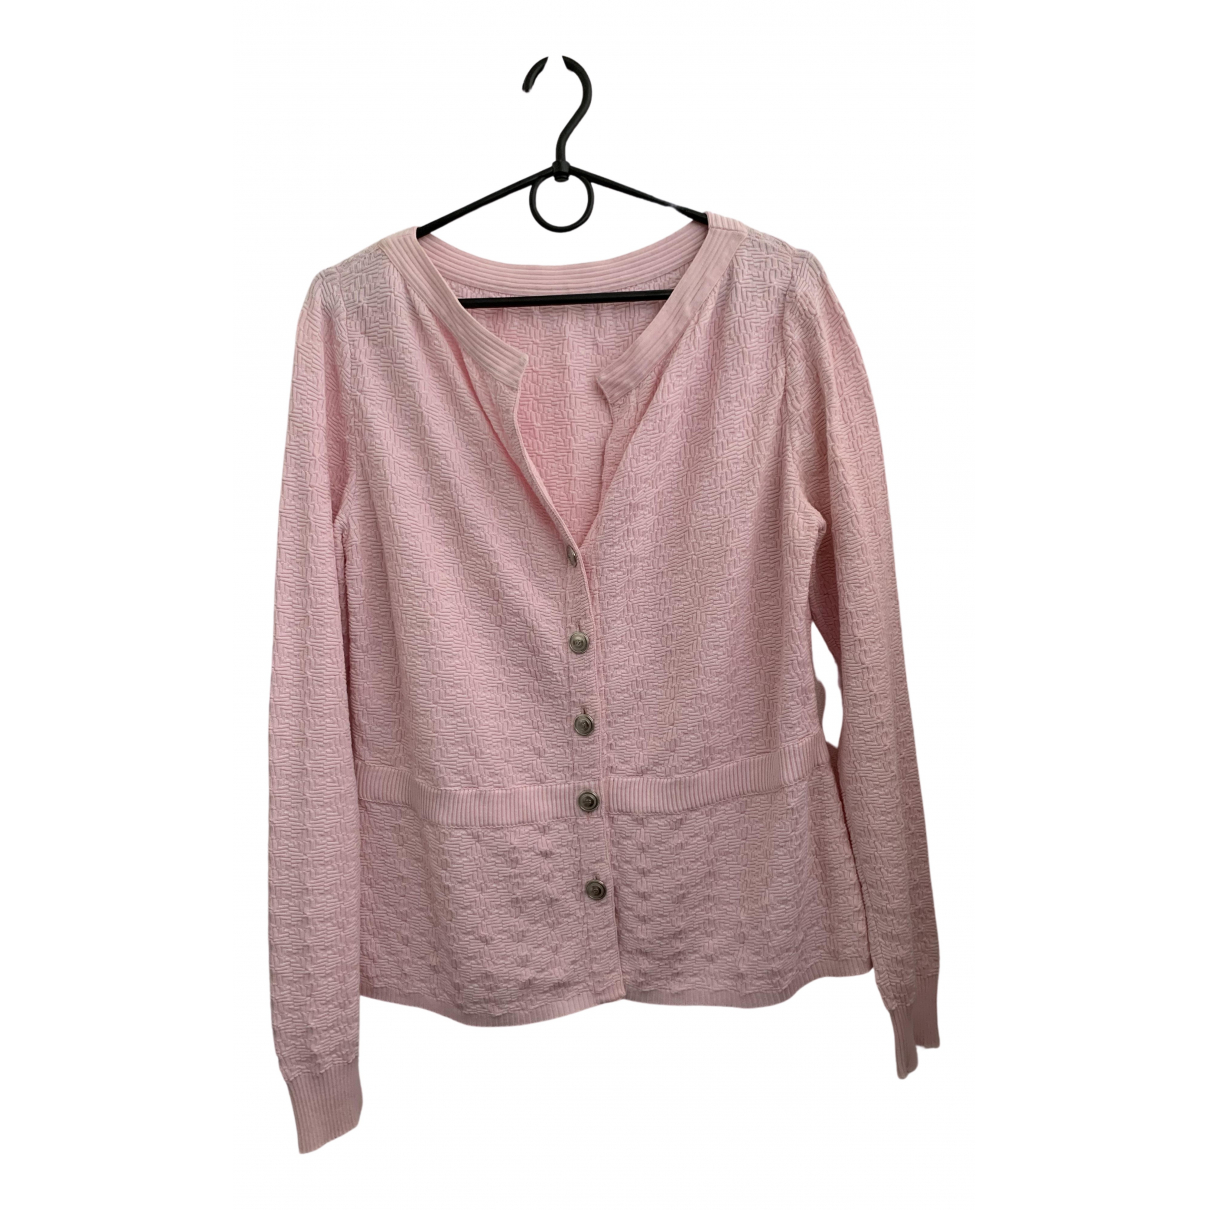 Chanel N Pink Cotton Knitwear for Women 40 FR